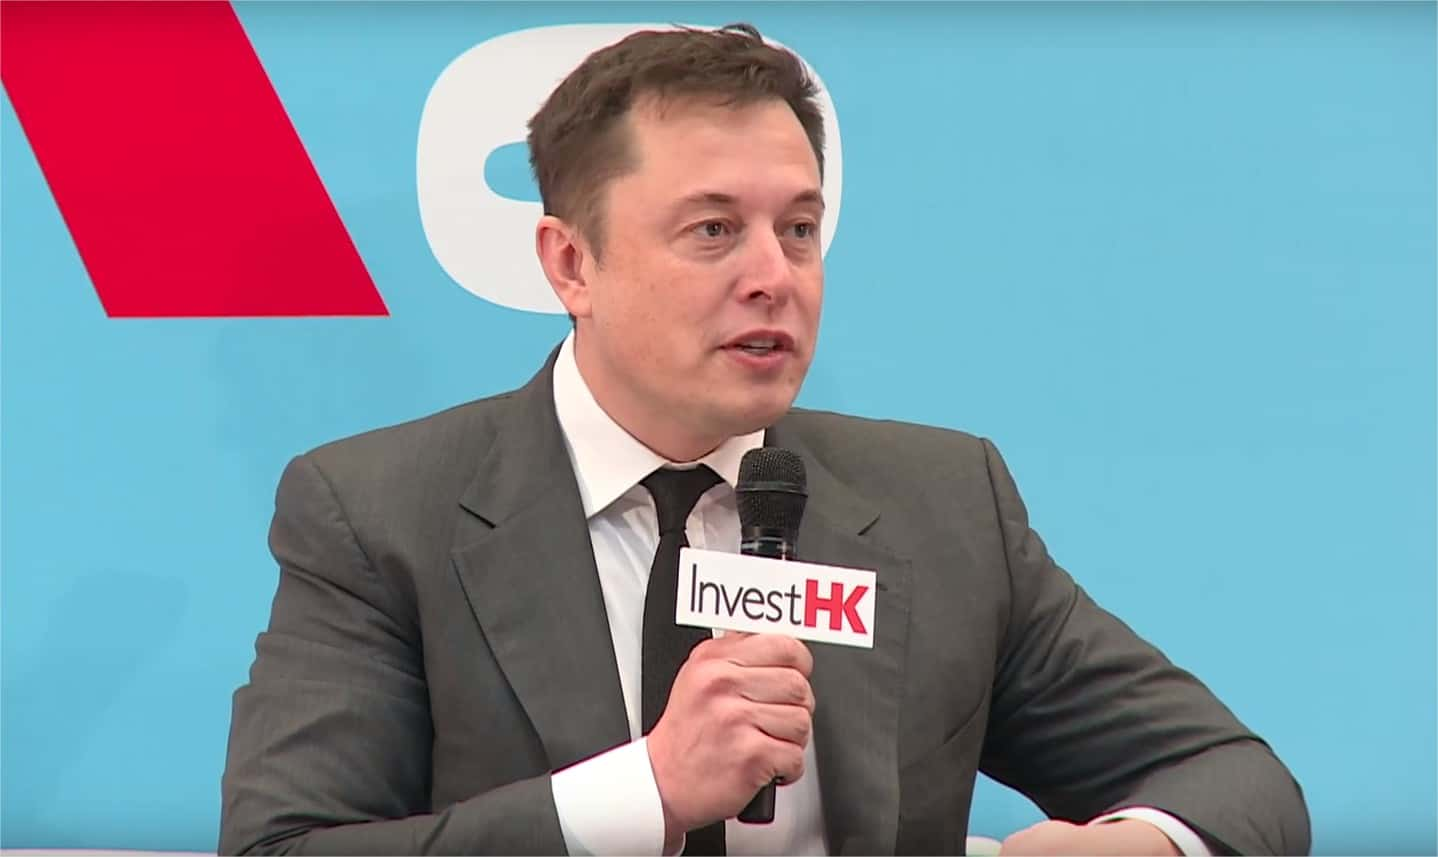 When Elon Musk wanted to be the CEO of Apple